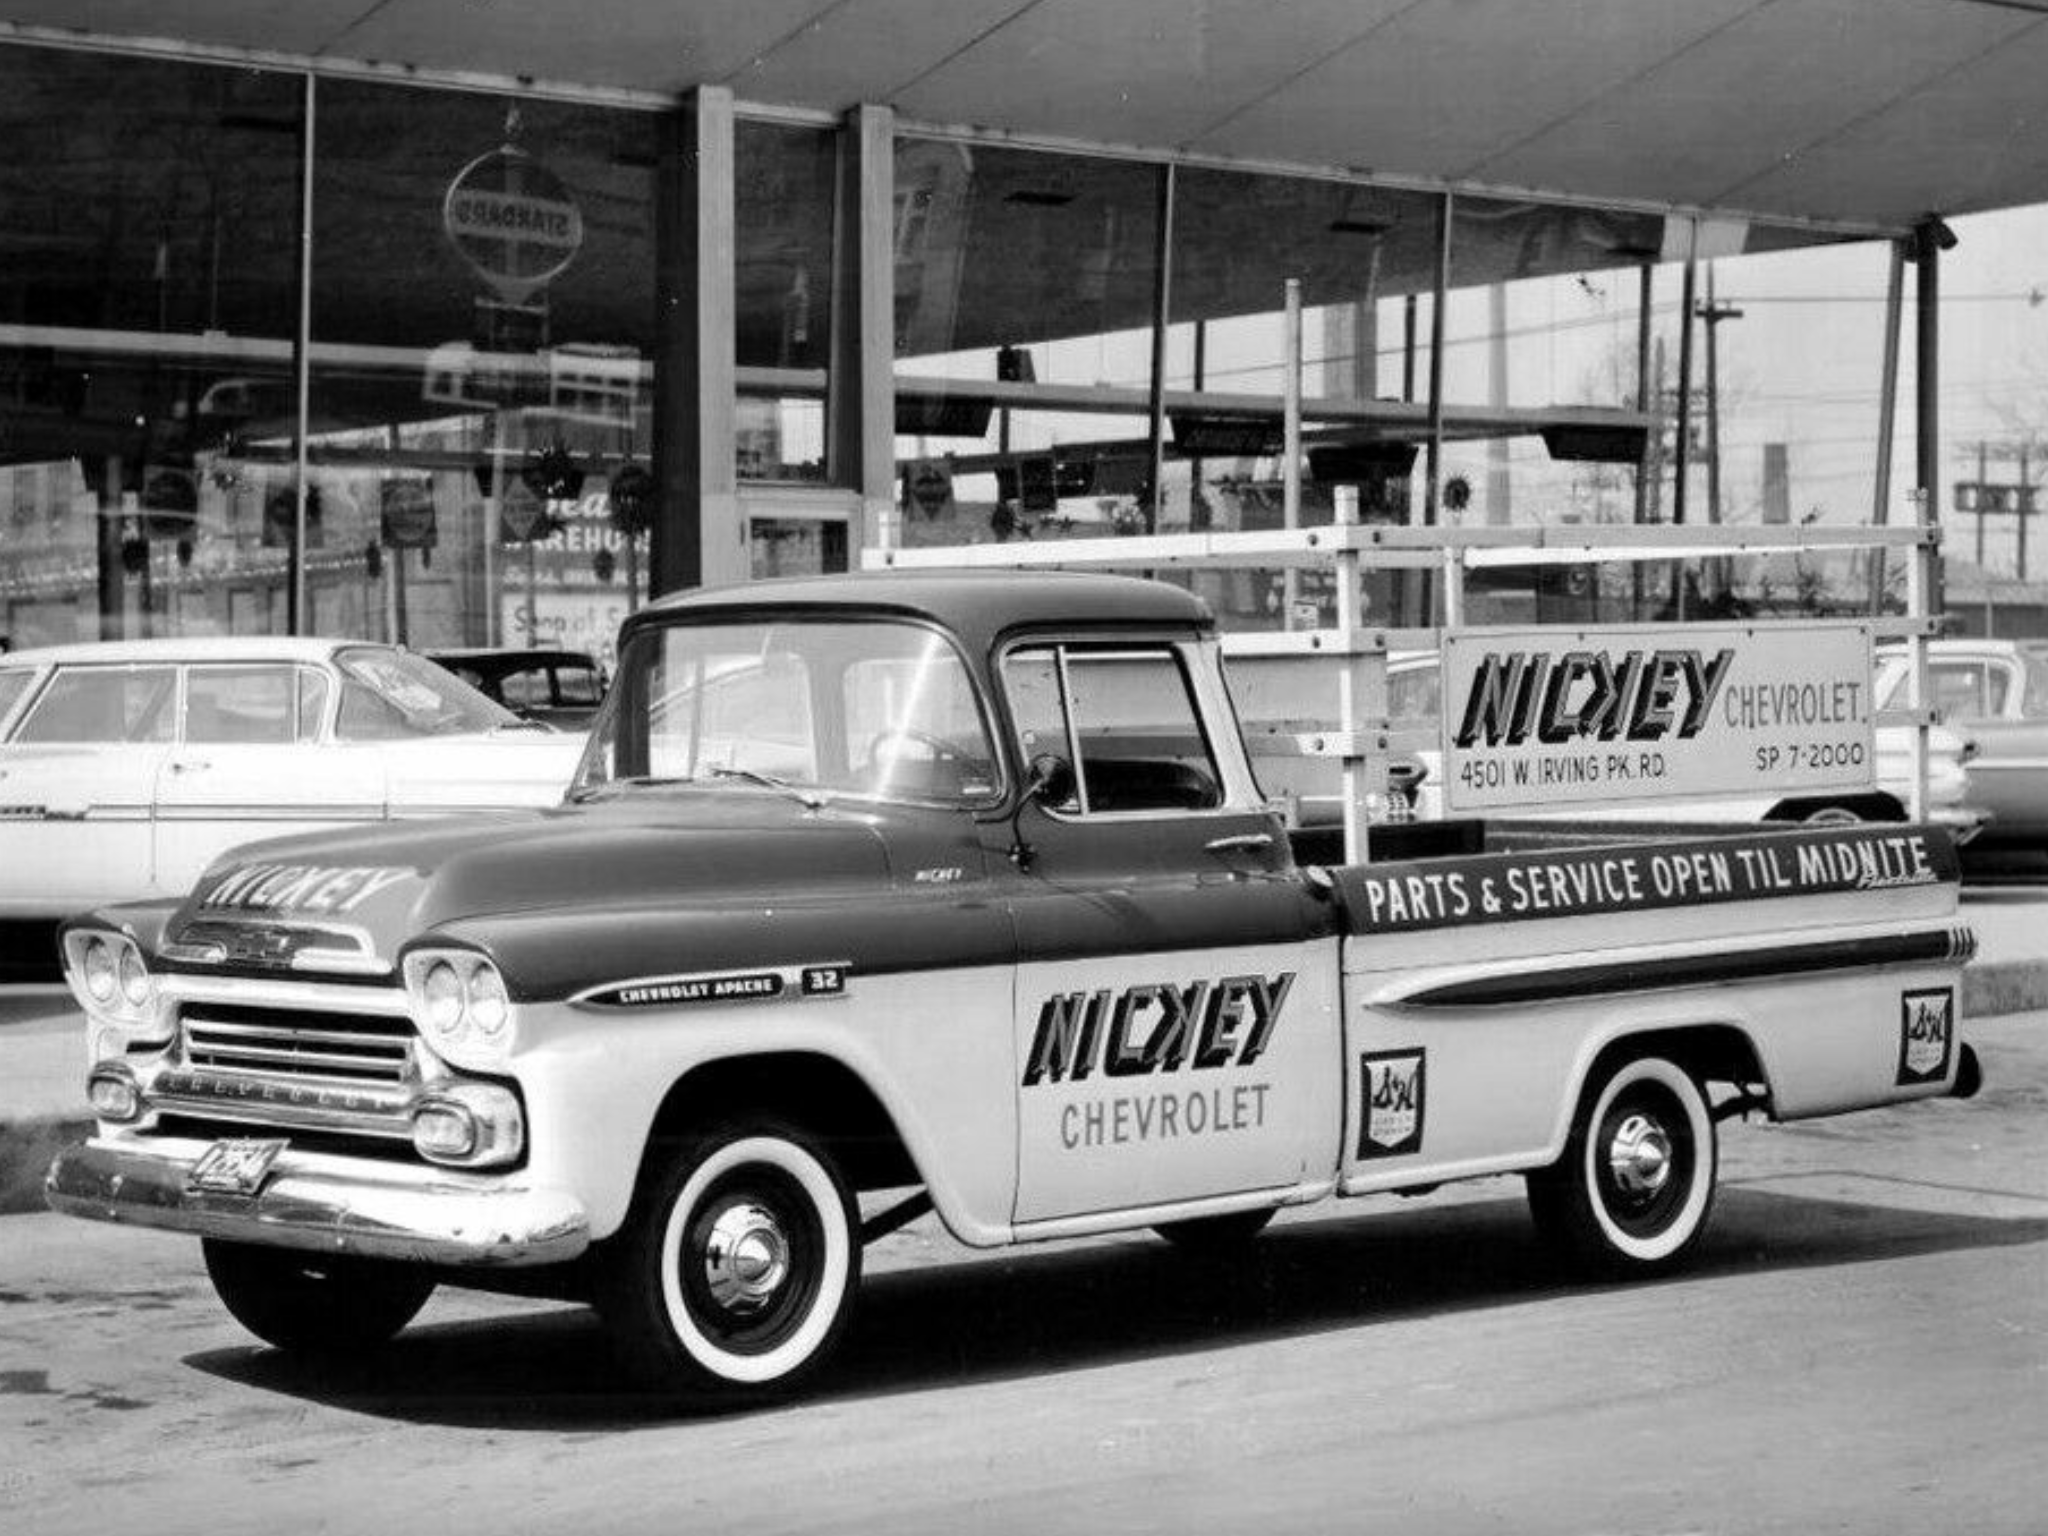 1959 Nickey Chevrolet Dealership Chicago Illinois Chevrolet